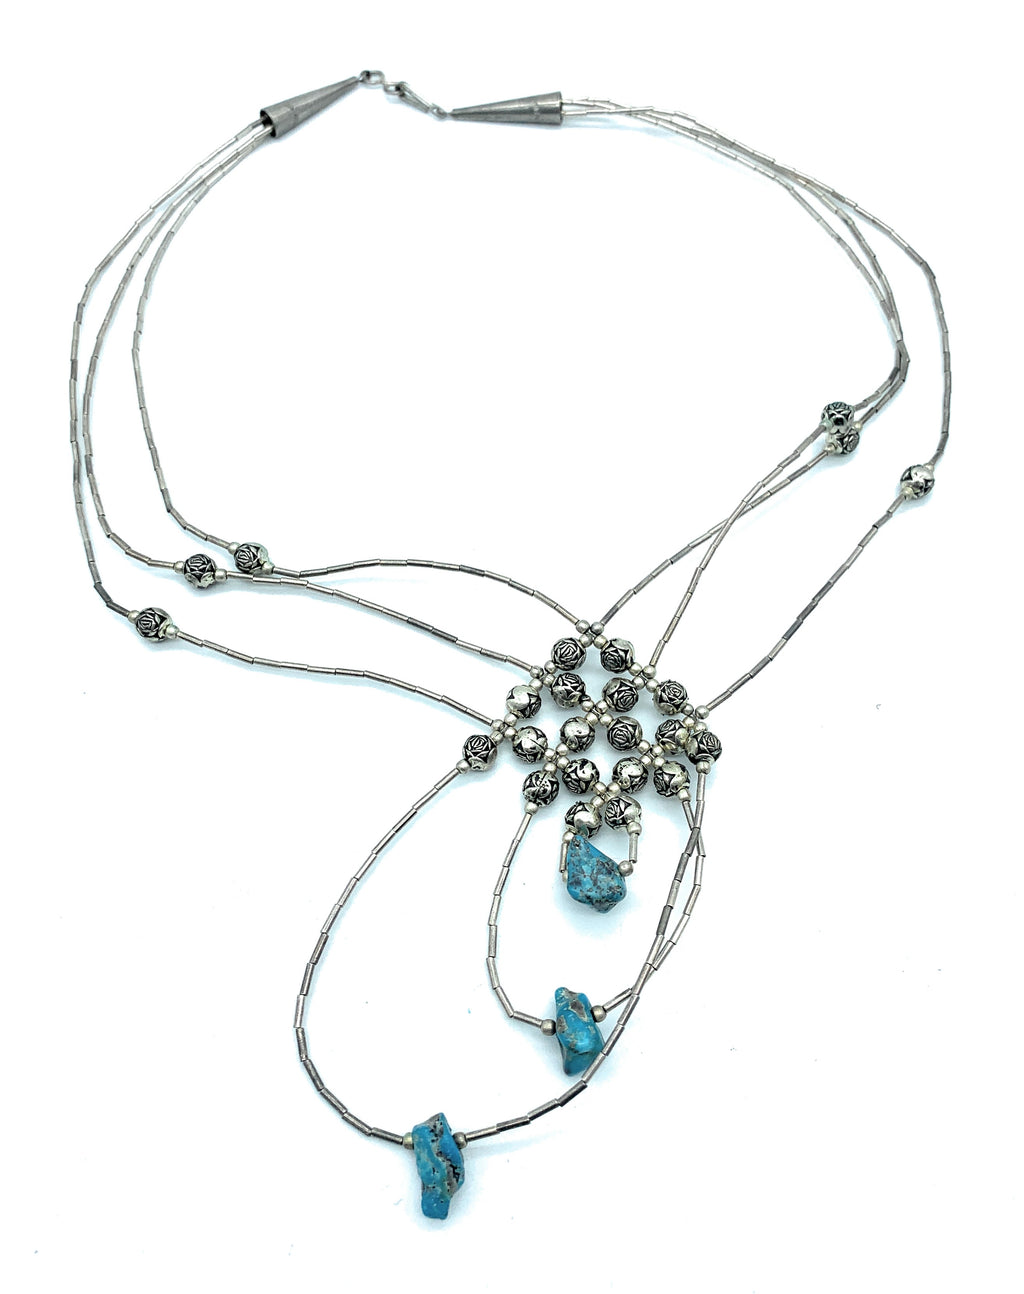 Vintage Zuni Sterling Silver Liquid Silver Rose bead & Turquoise Necklace